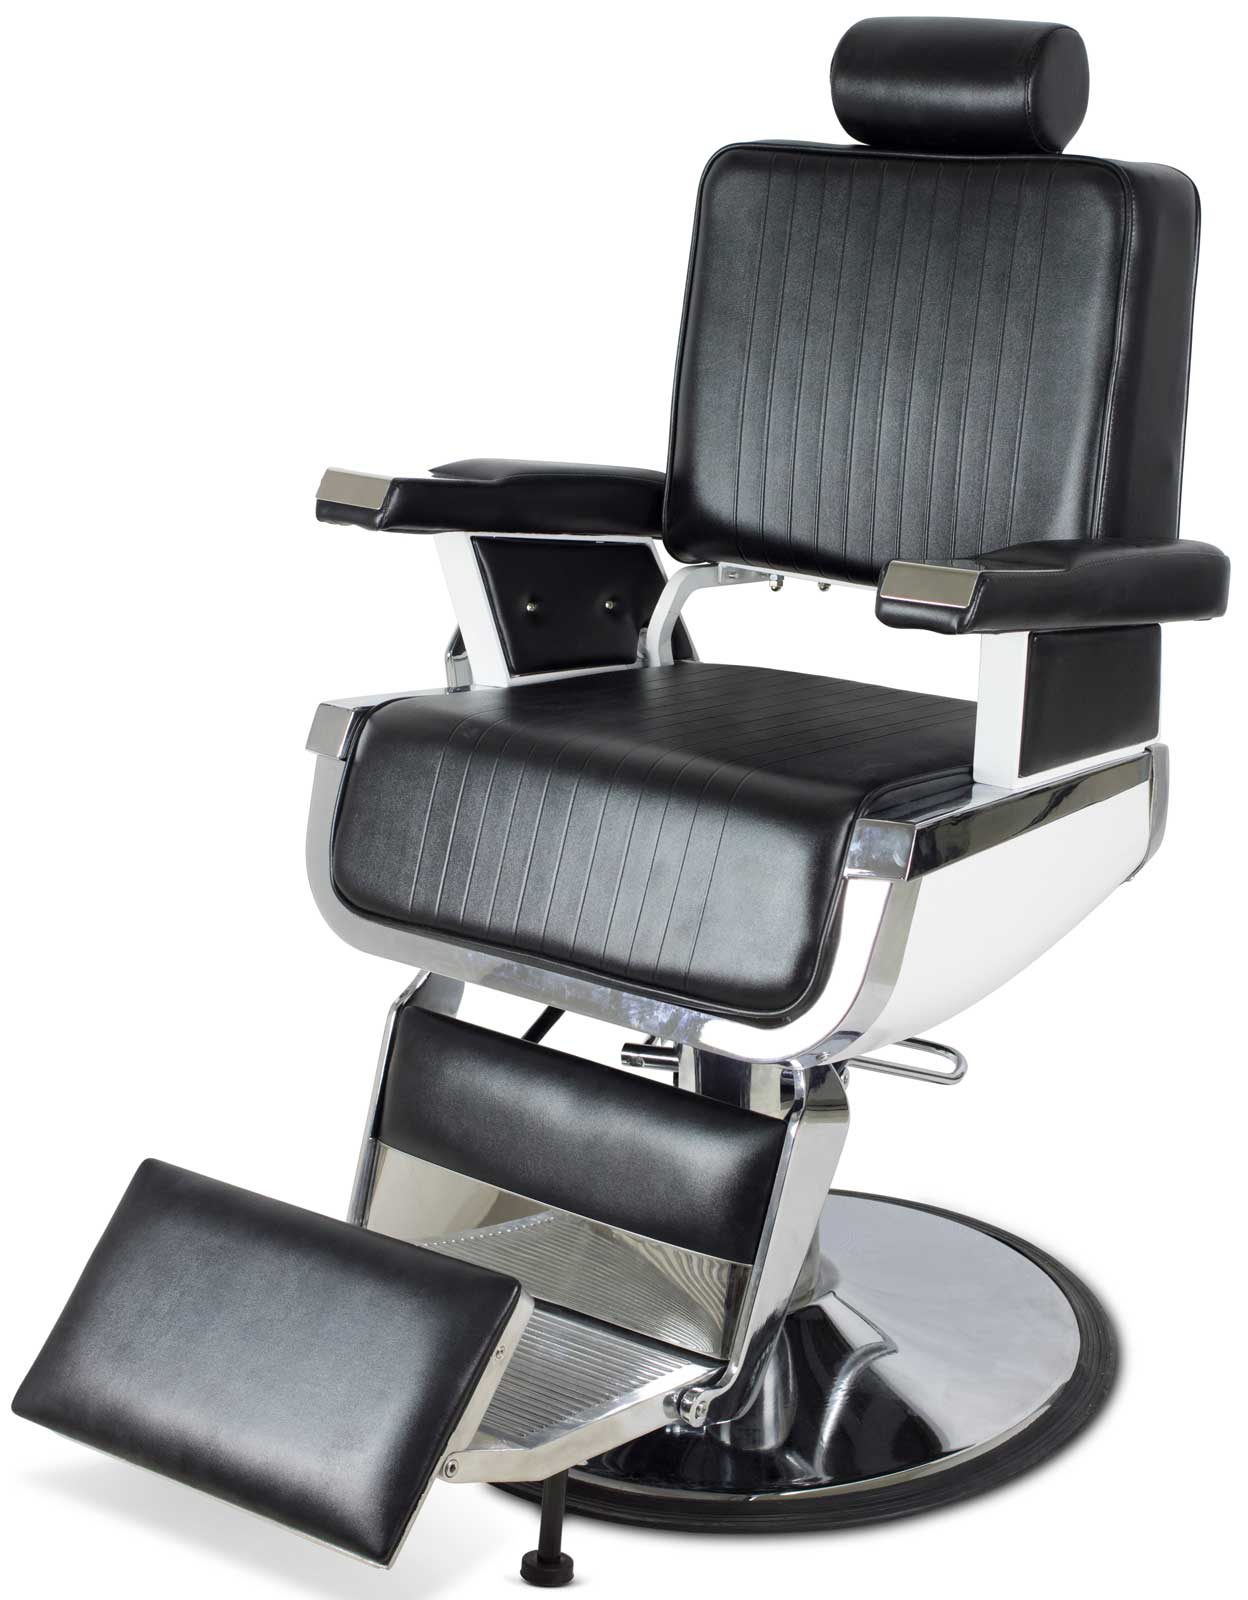 Extraordinary barber chairs for sale for salon furniture with cheap barber chairs for sale